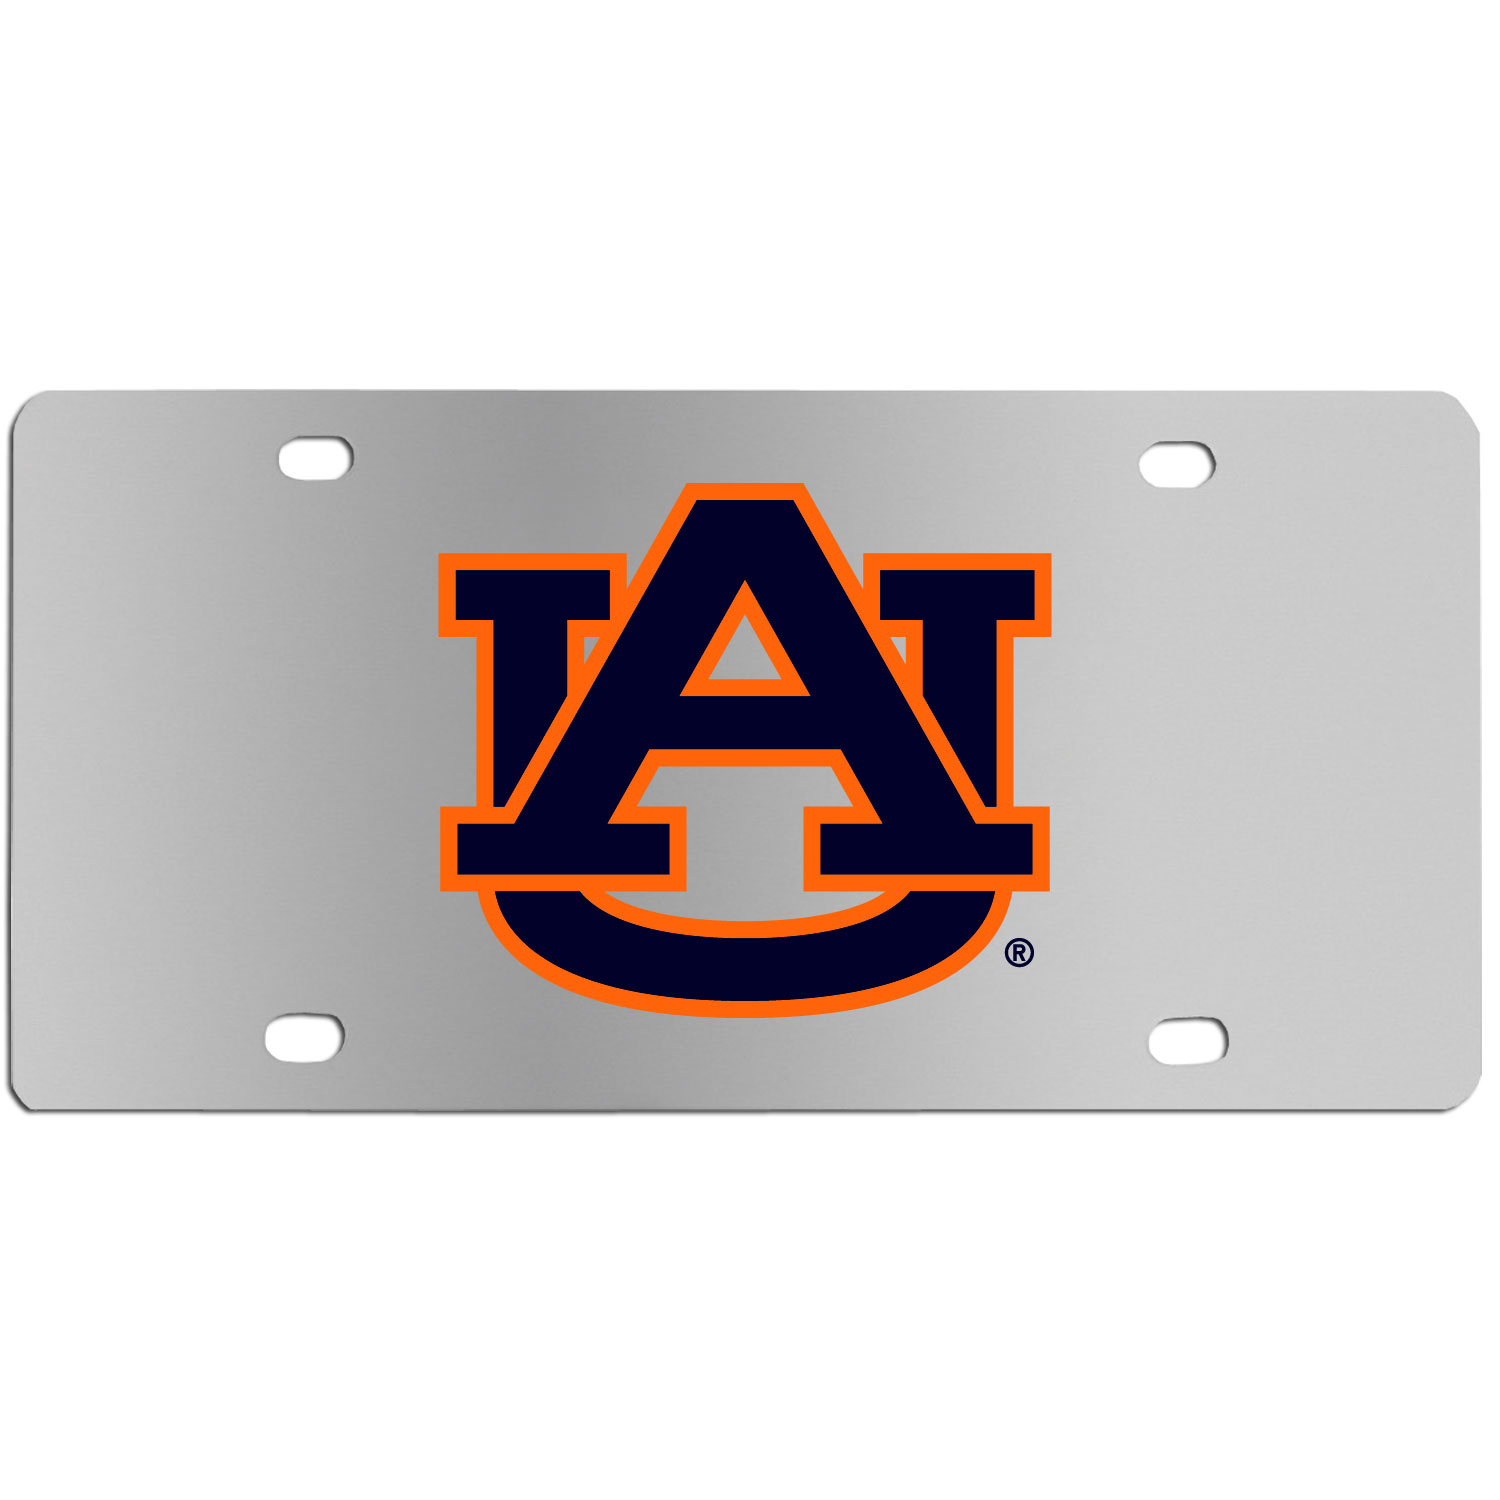 Auburn Tigers Steel License Plate Wall Plaque - This high-quality stainless steel license plate features a detailed team logo on a the polished surface. The attractive plate is perfect for wall mounting in your home or office to become the perfect die-hard Auburn Tigers fan decor.